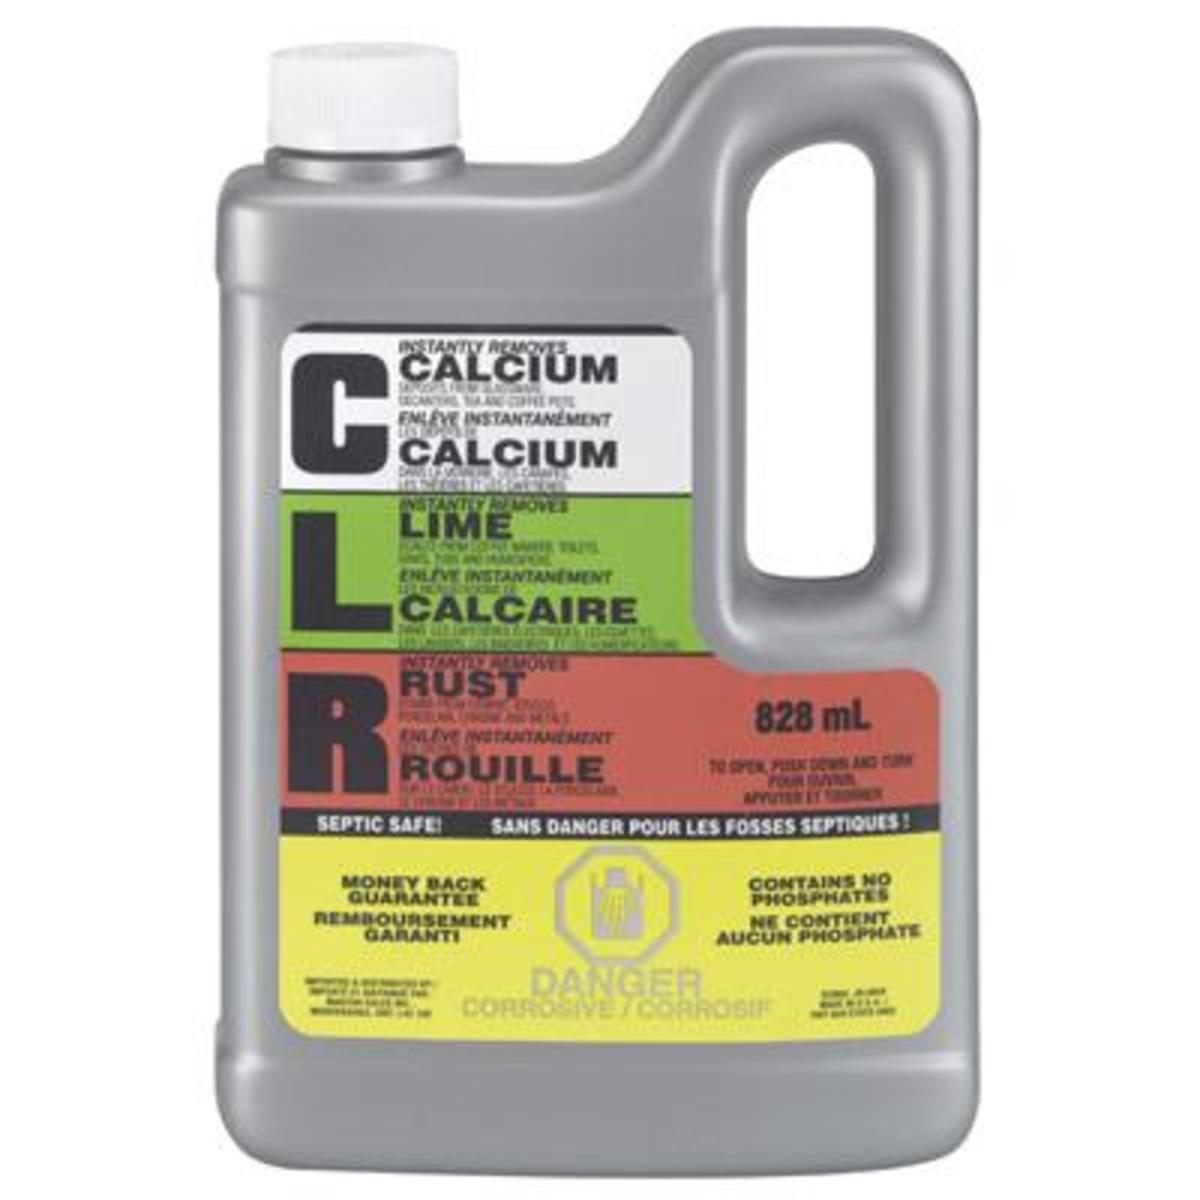 For tough cases of soap scum and lime buildup, CLR is the best option.